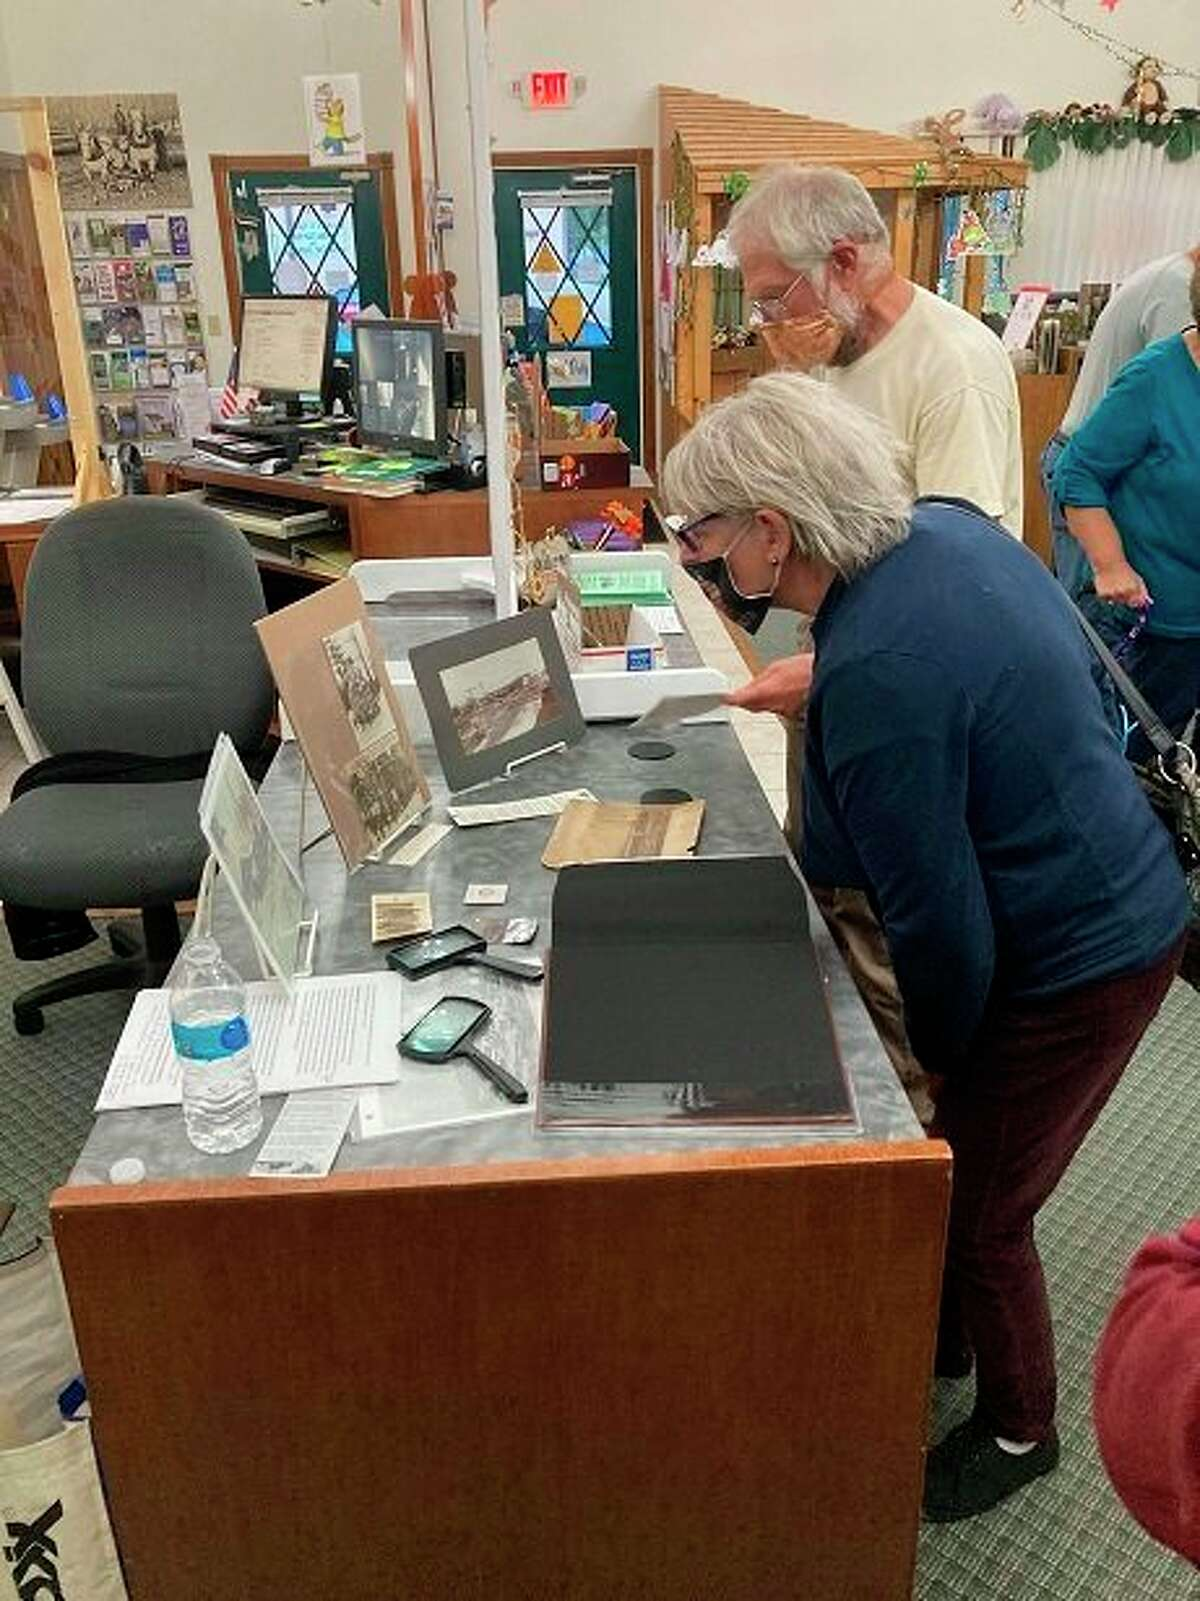 The logging history presentation was well attended. Visitors viewed the displays. (Courtesy photo)